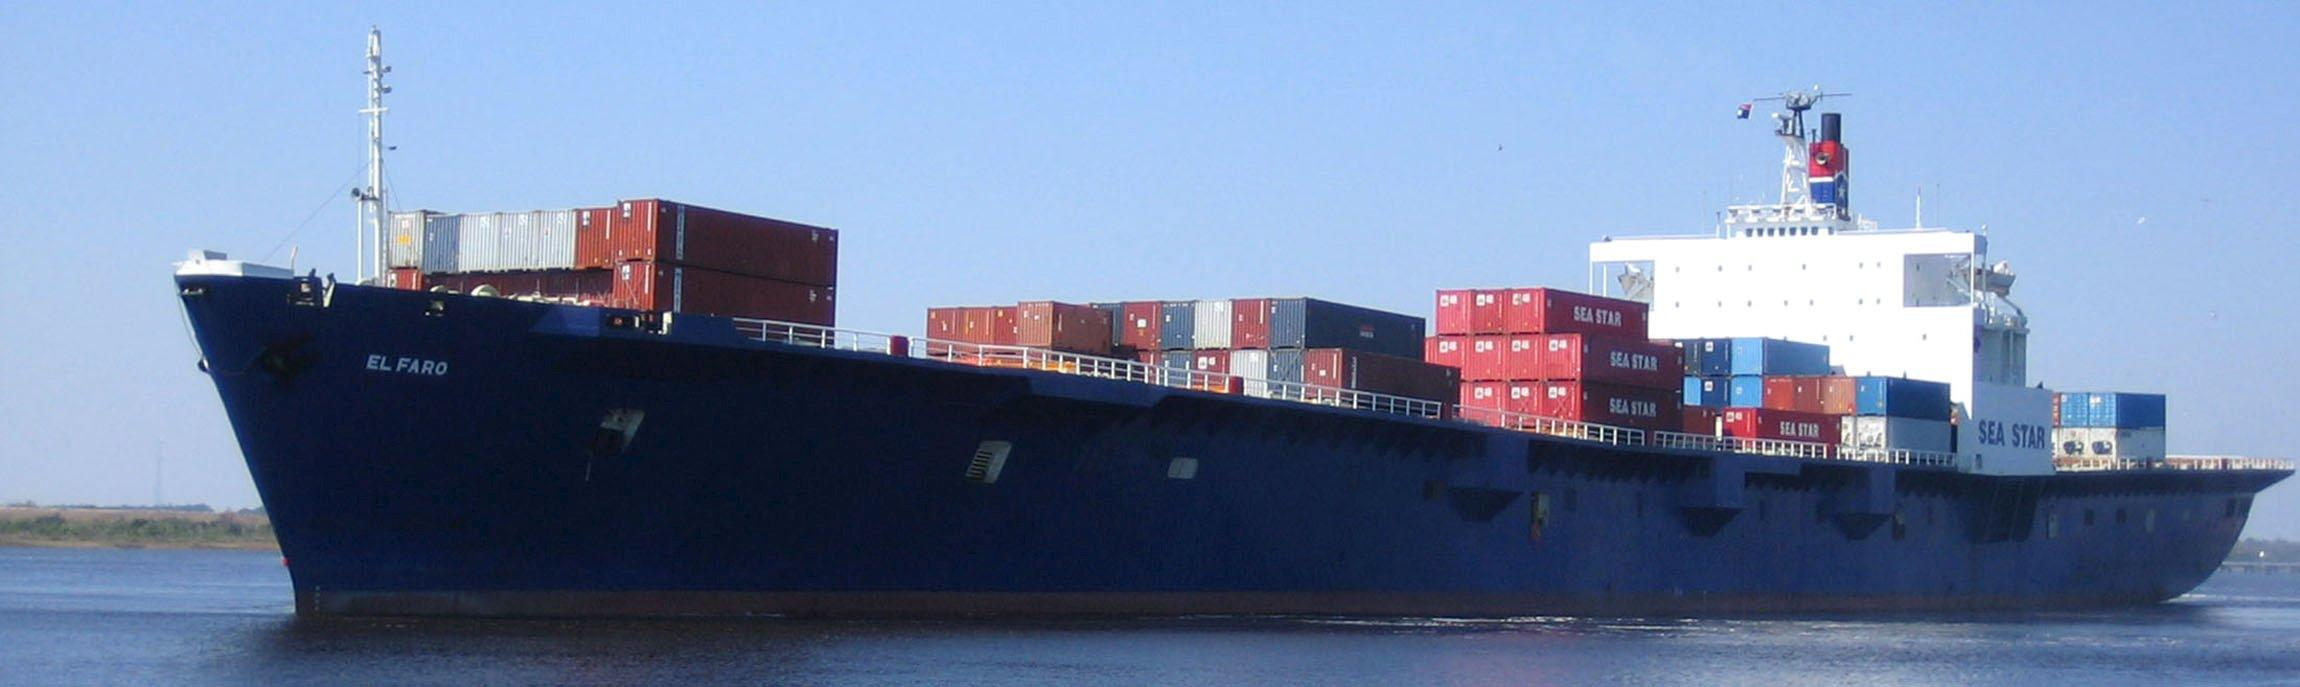 El Faro, missing cargo ship, sank during Hurricane Joaquin